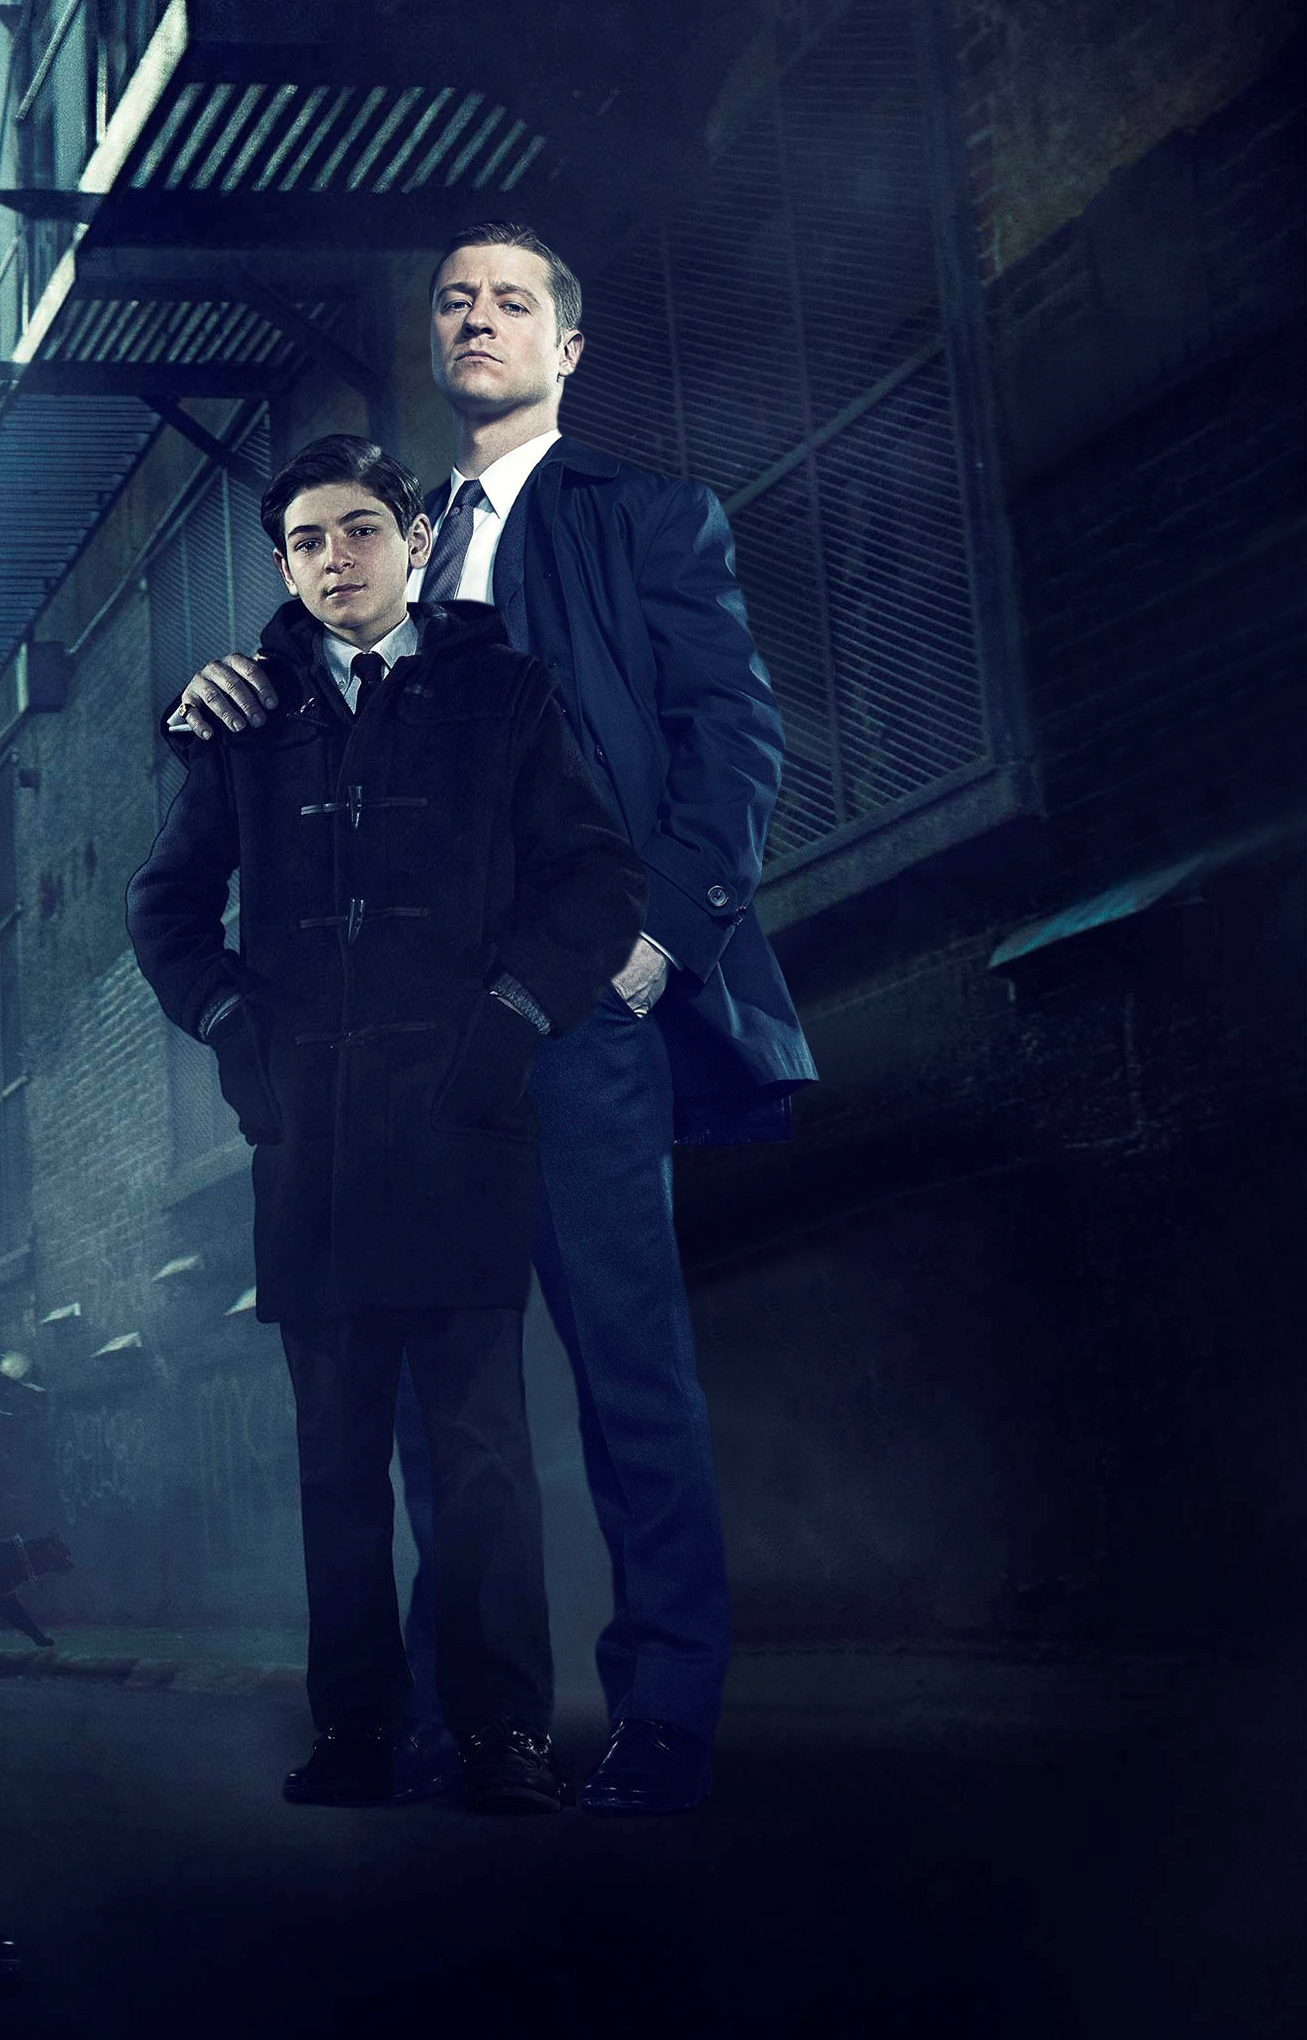 batman and bruce wayne Bruce wayne has been slowly but surely on his way to becoming batman on fox's gotham but now it seems young master bruce's transformation into the caped crusader will speed up a bit when the series returns for season 4.